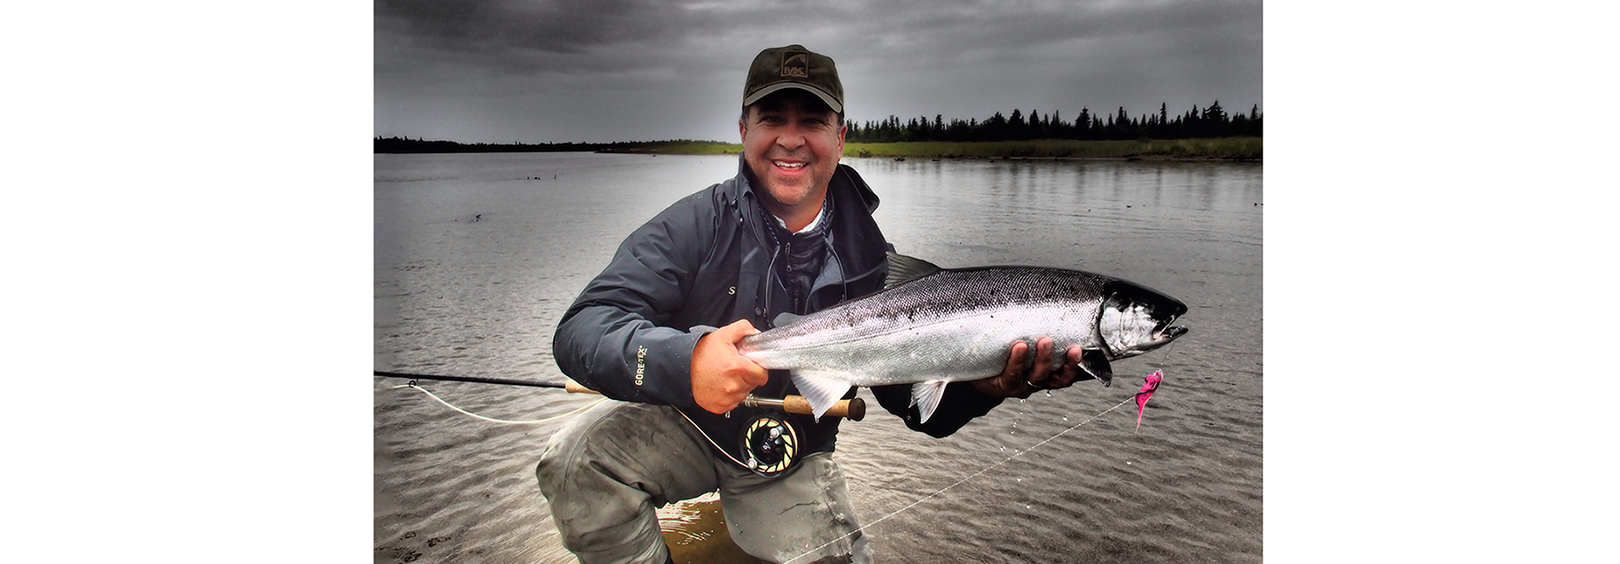 Jim Kimball catching salmon